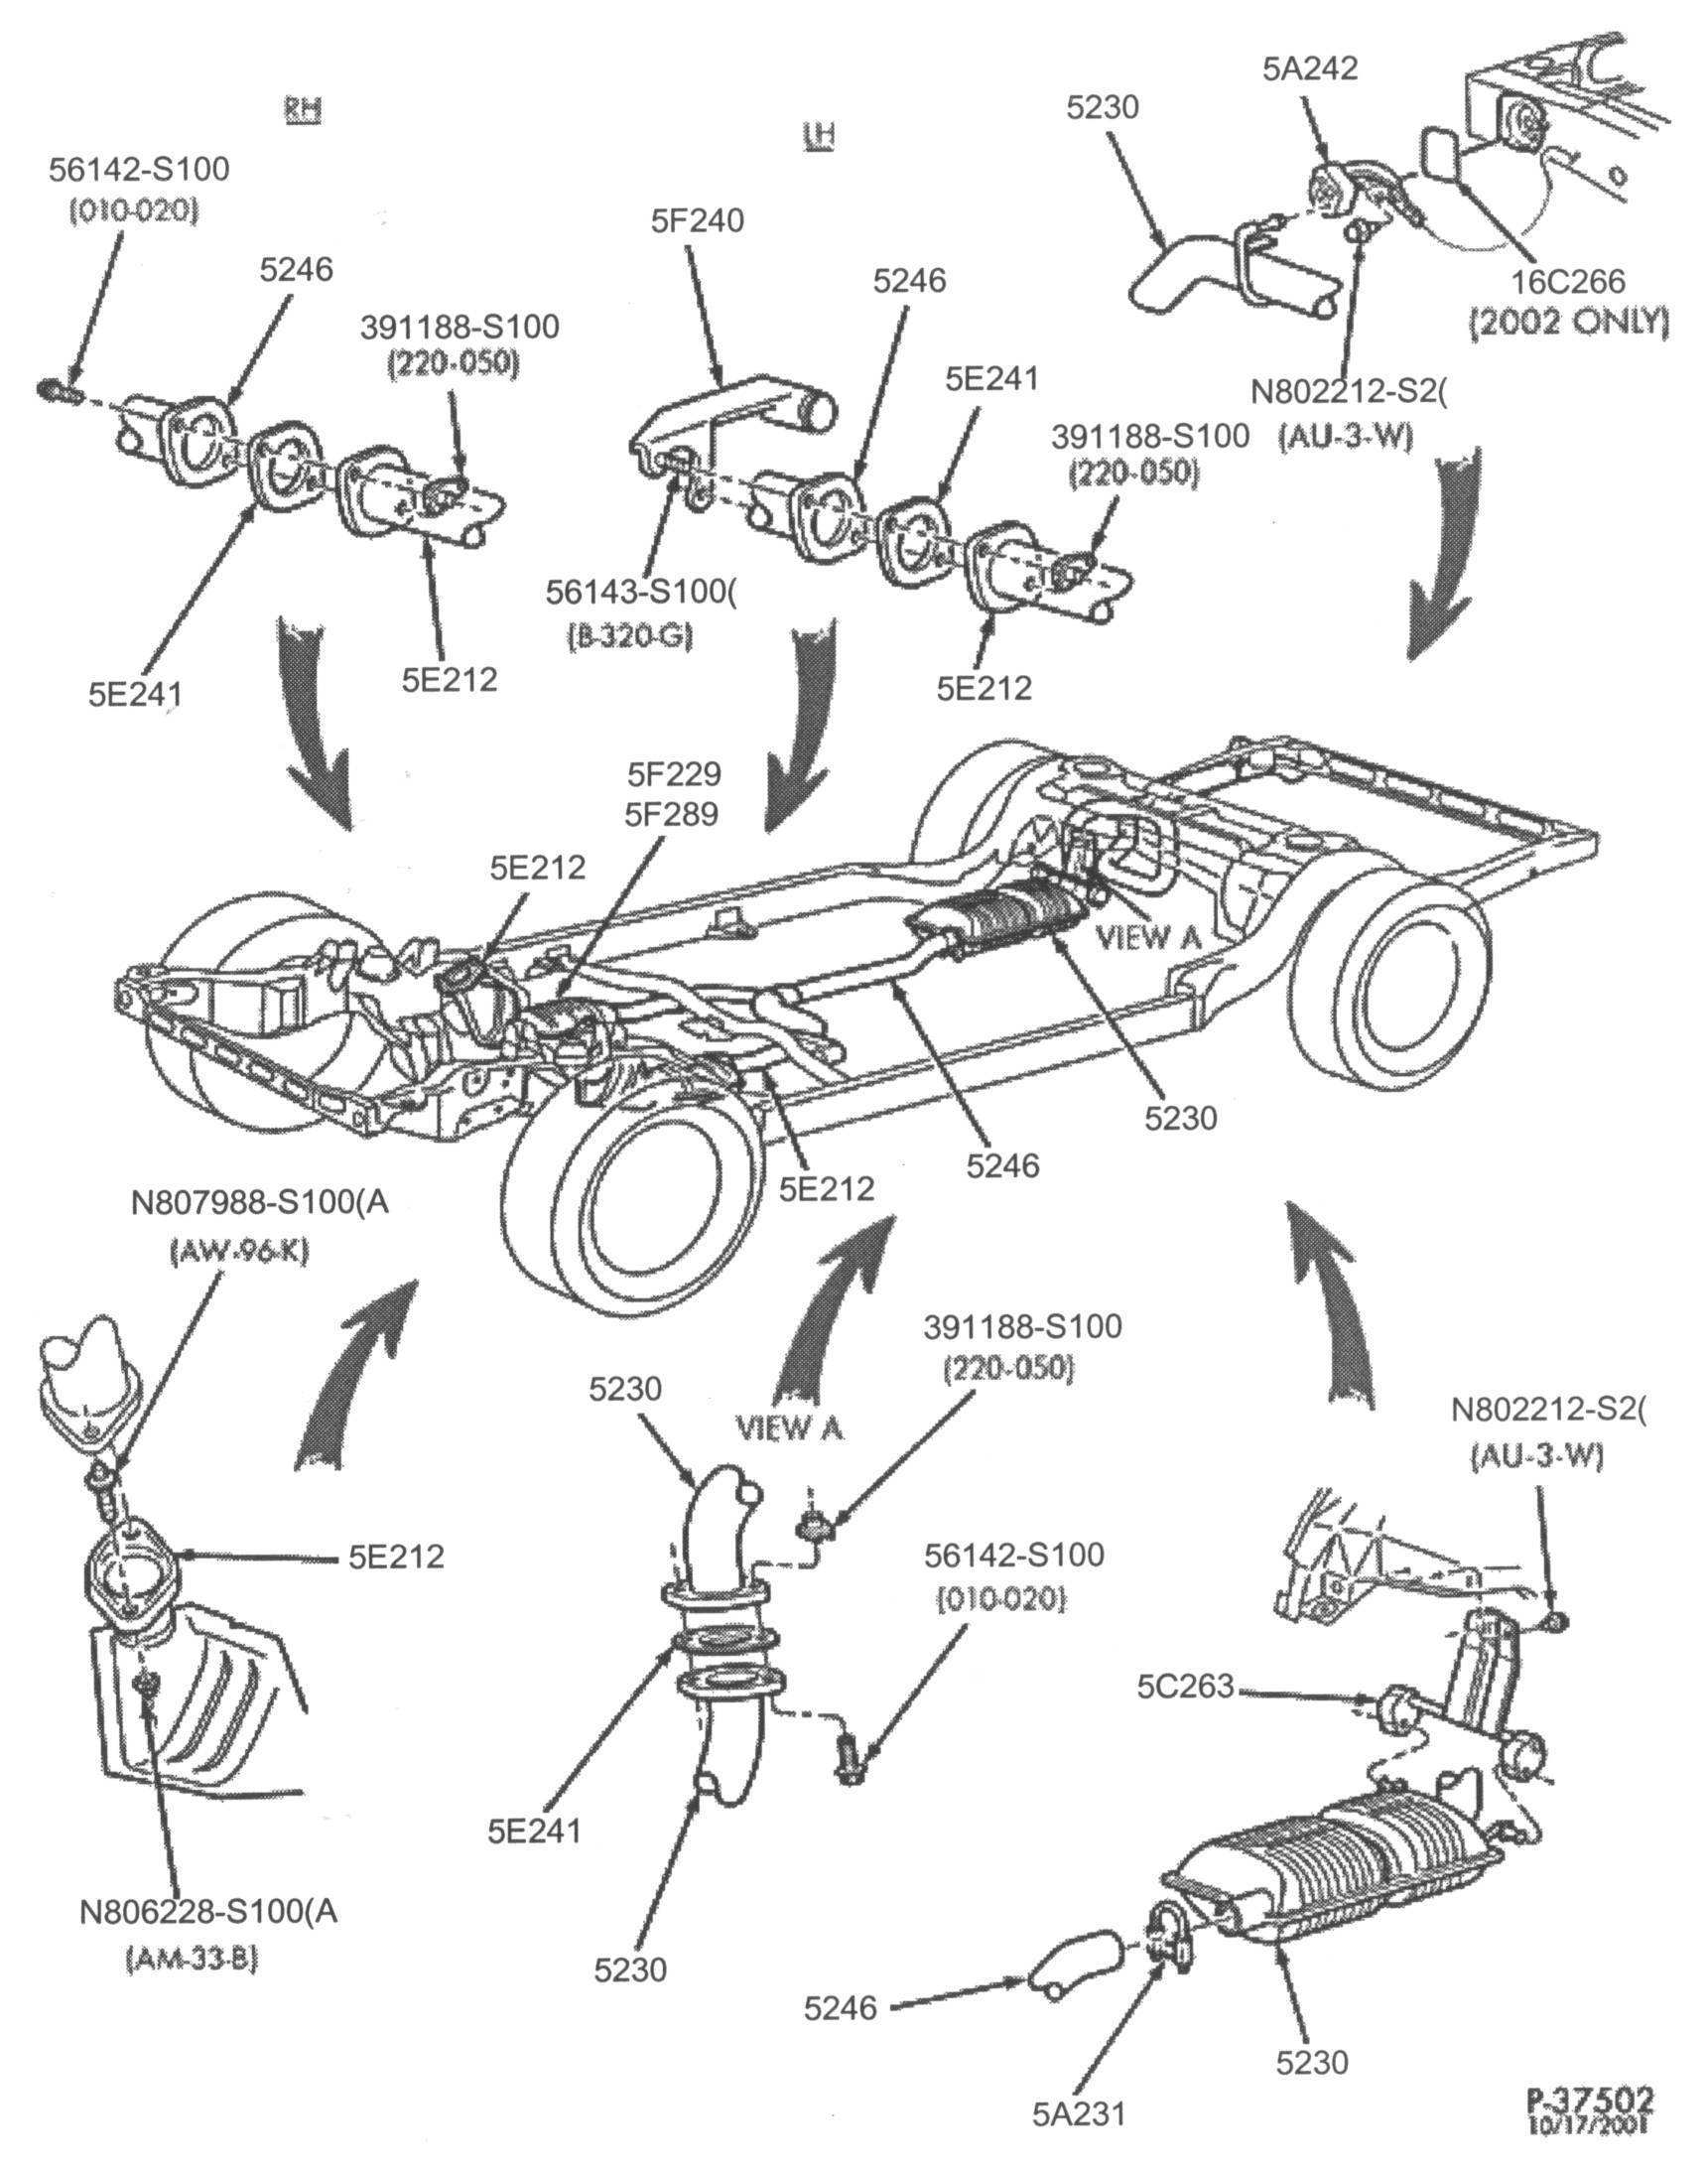 2002 Ford Exhaust Diagram. Ford. Auto Parts Catalog And